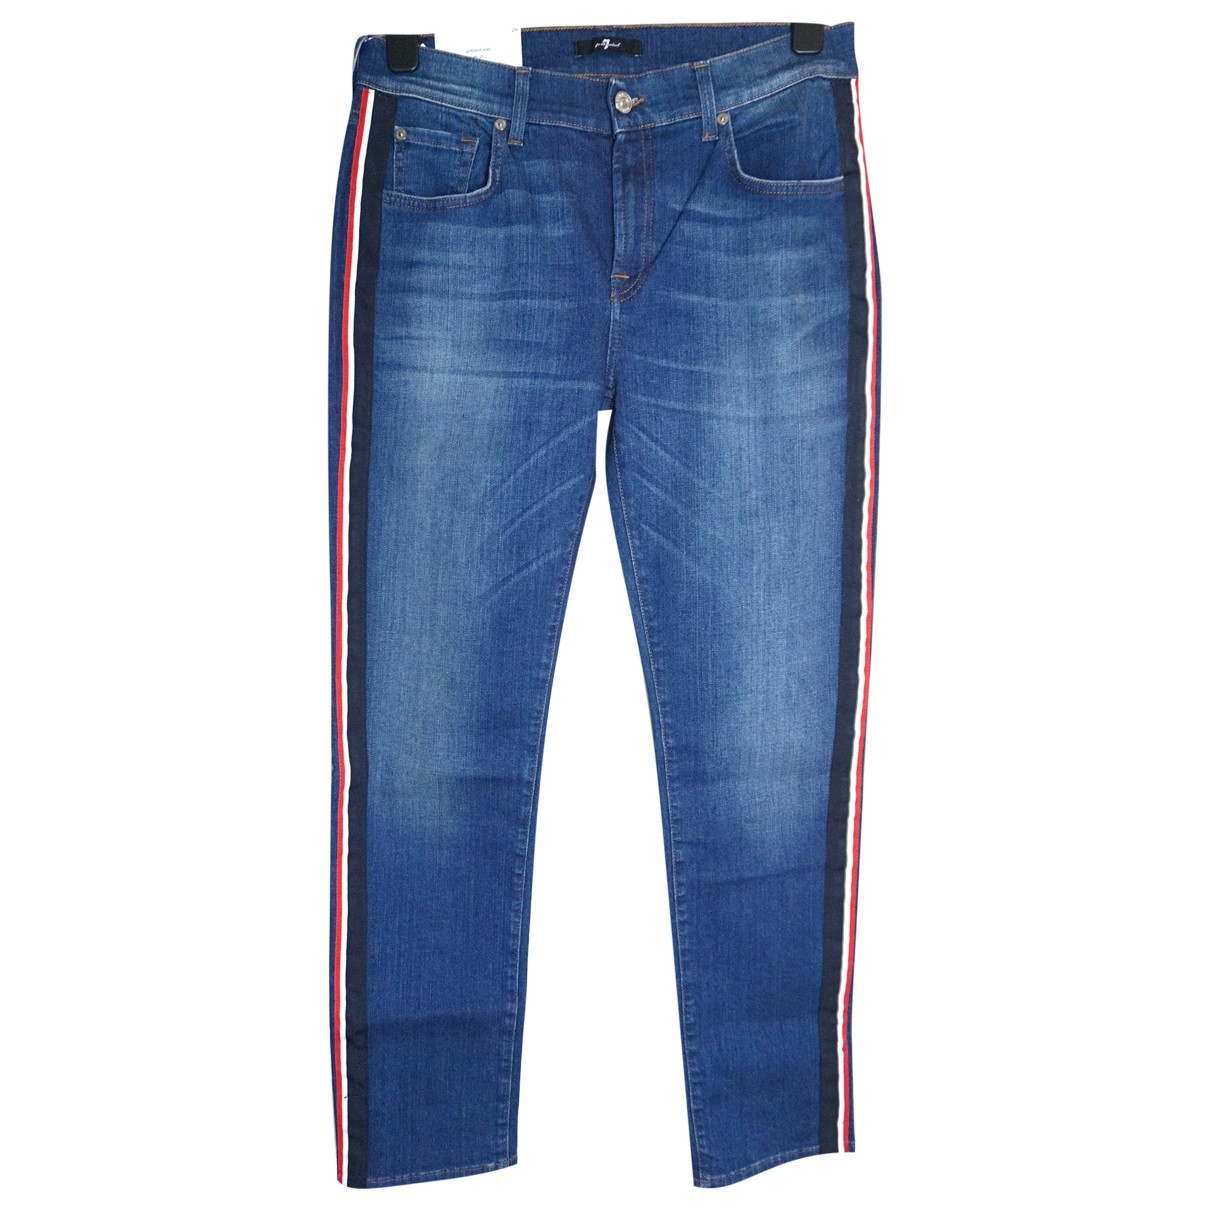 7 For All Mankind \N Cotton - elasthane Jeans for Women 29 US